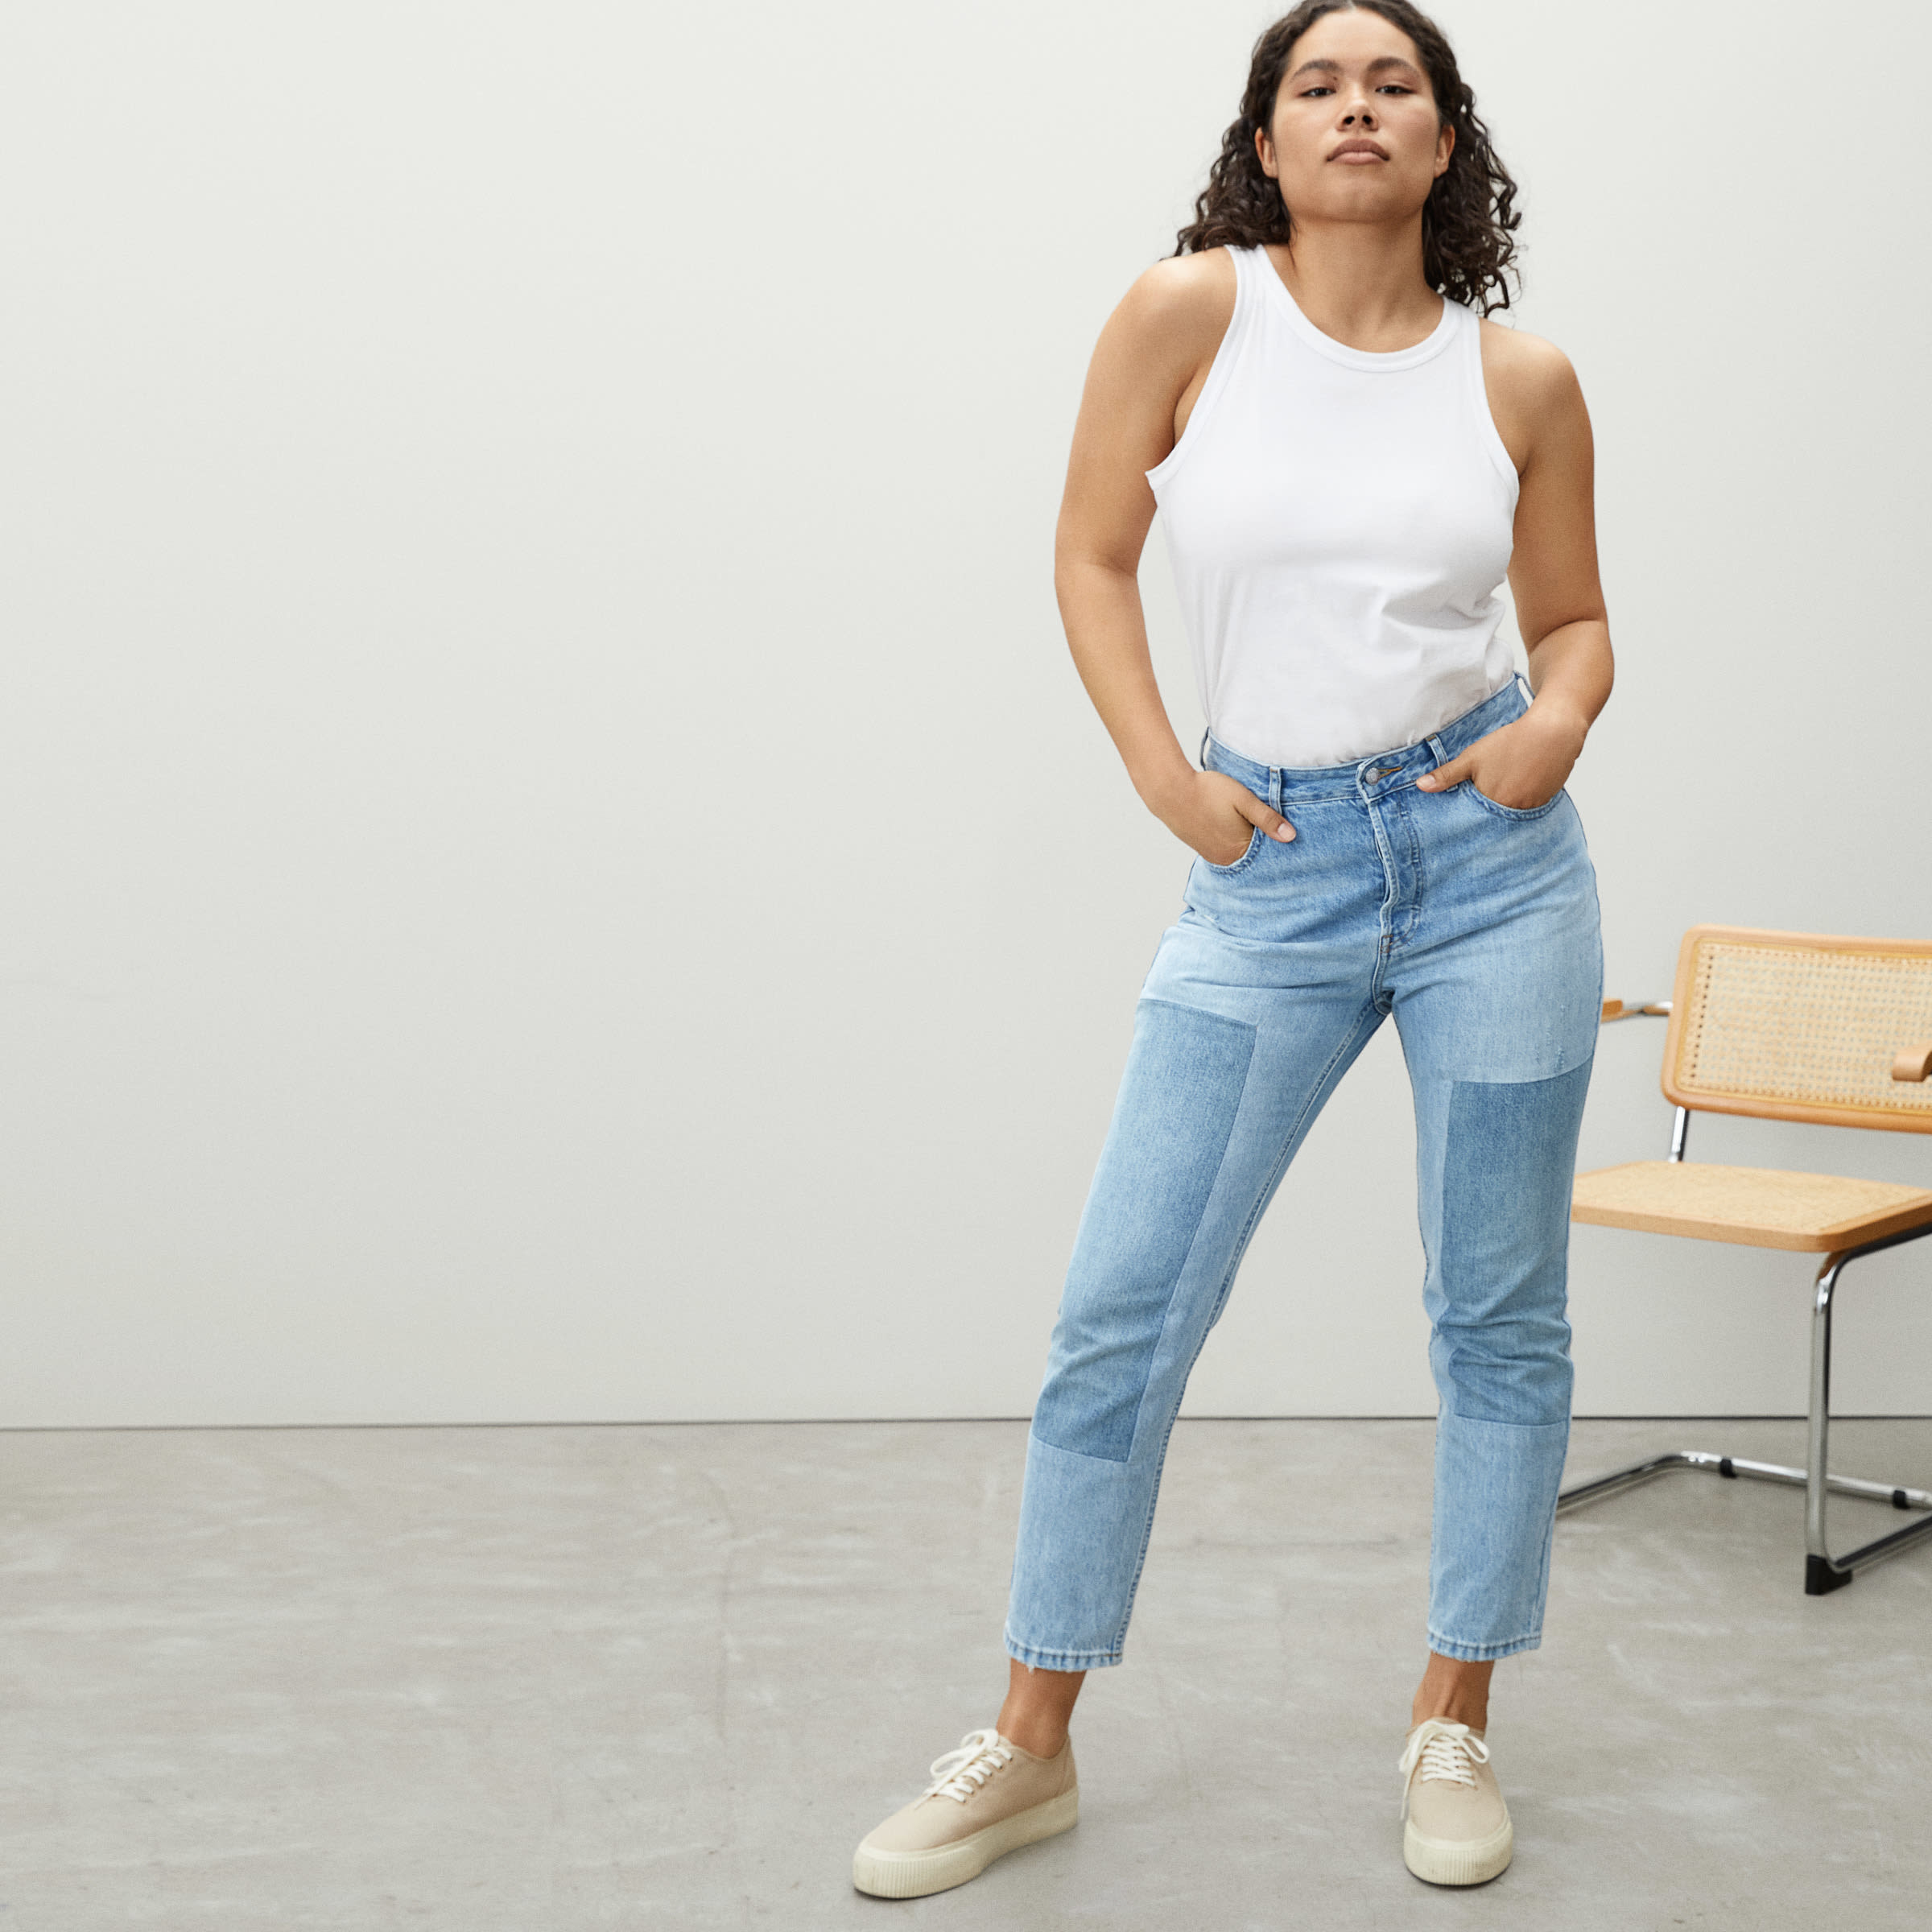 a model in blue patchy jeans